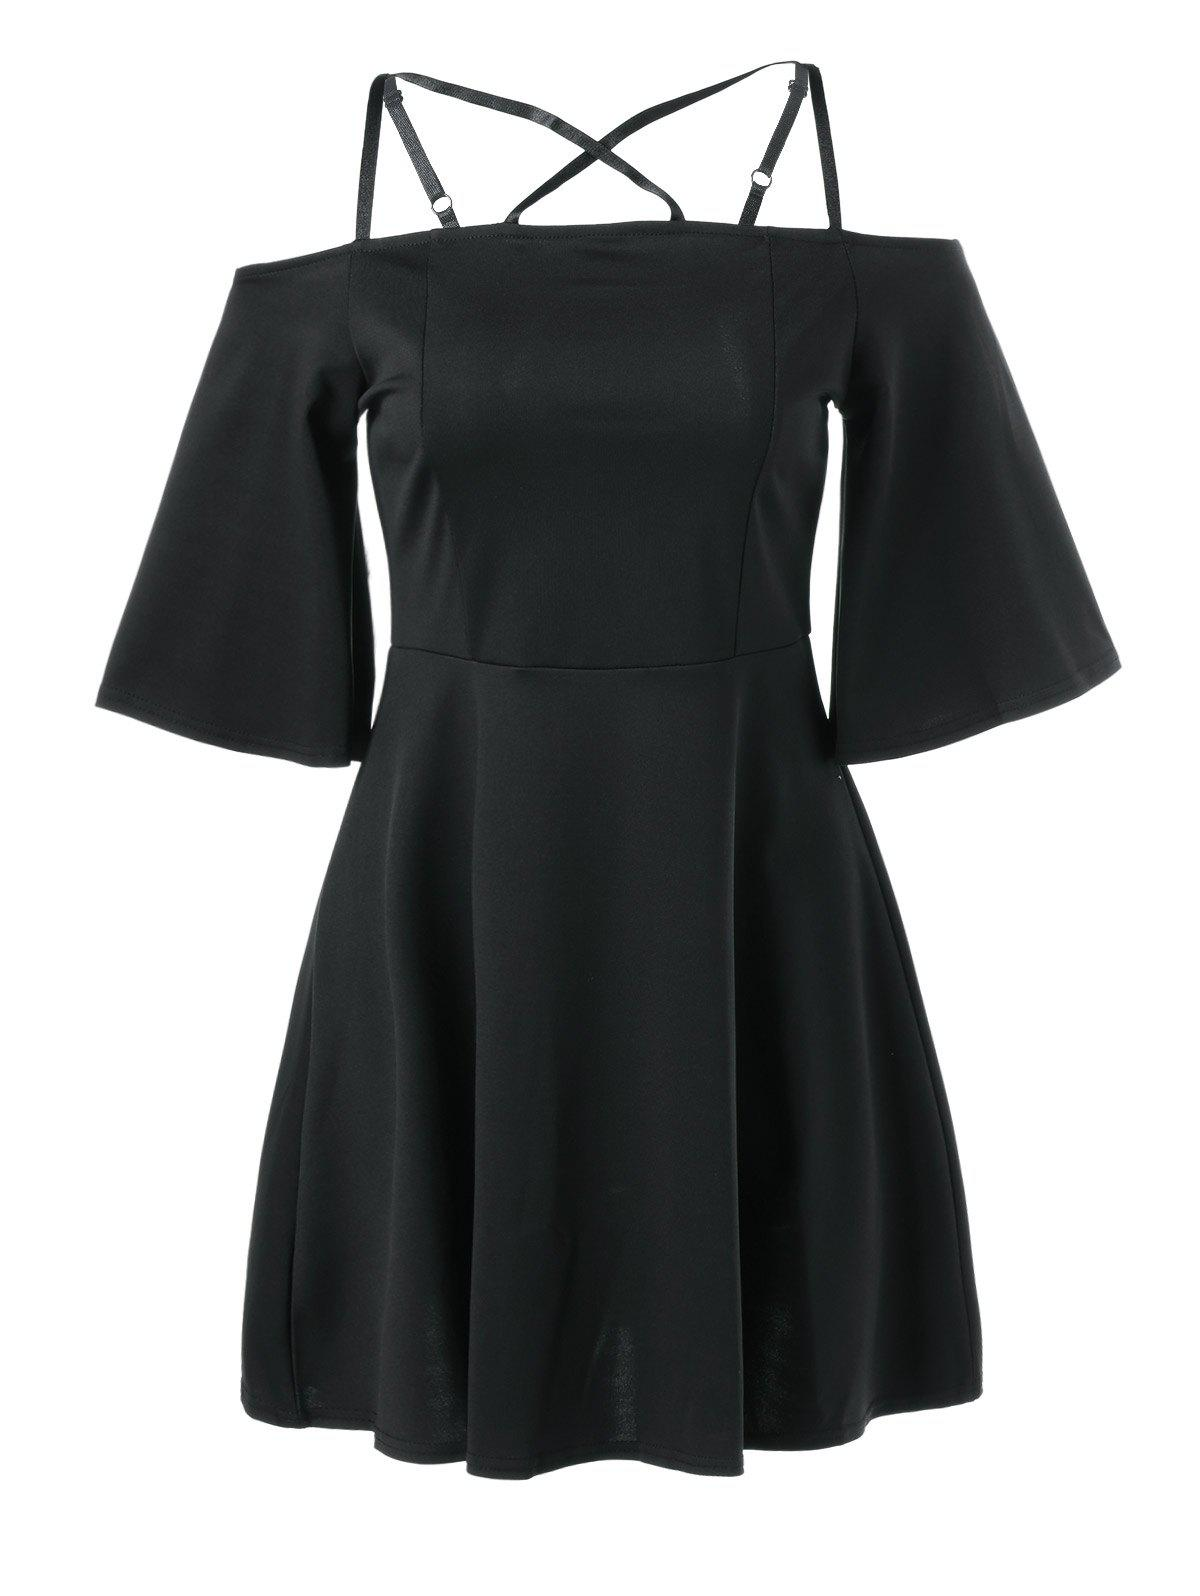 Cami de Bell Sleeve Criss Cross Dress - Noir XL